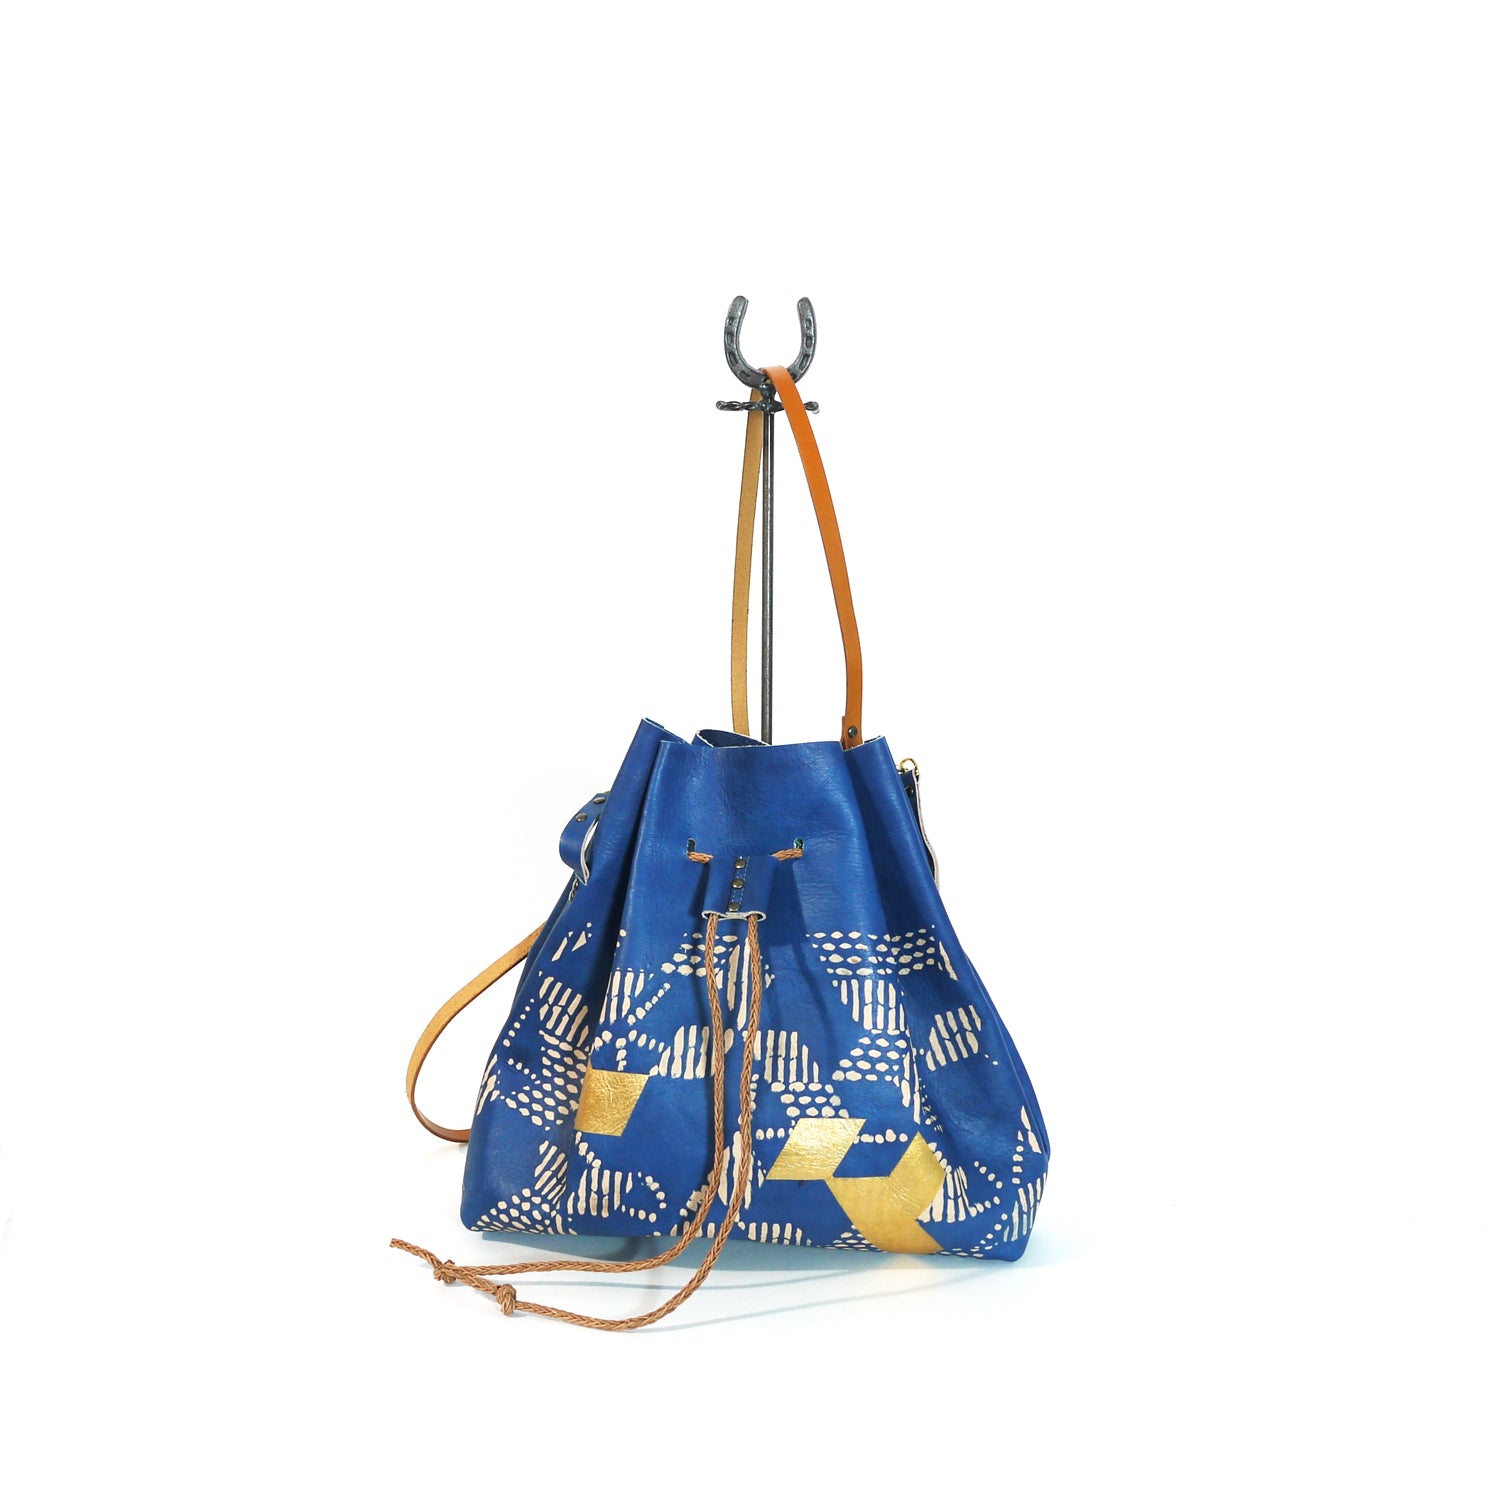 Bucket Bag 03. indigo leather shoulder bag